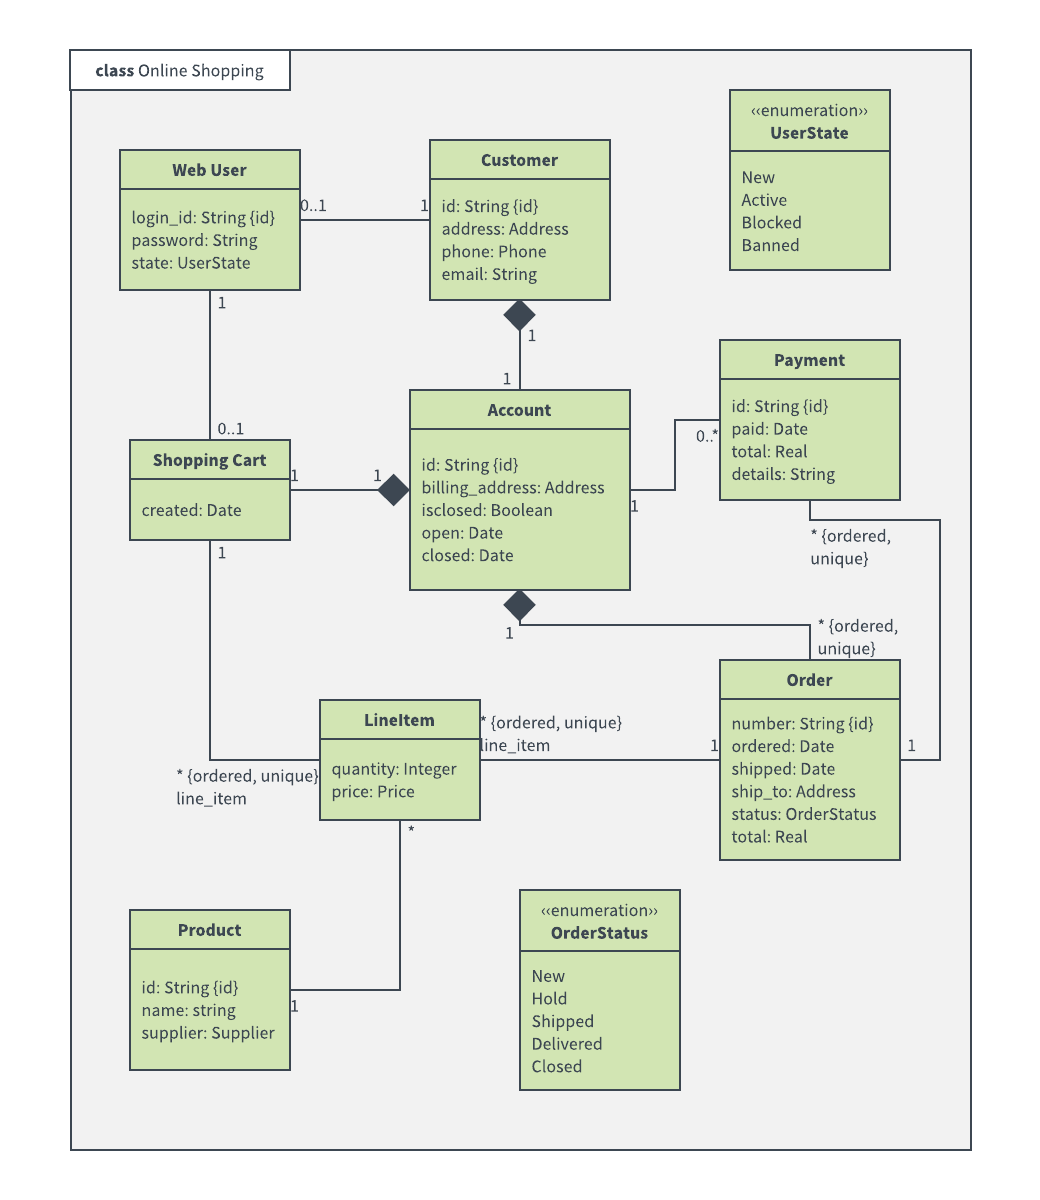 medium resolution of online shopping class diagram example